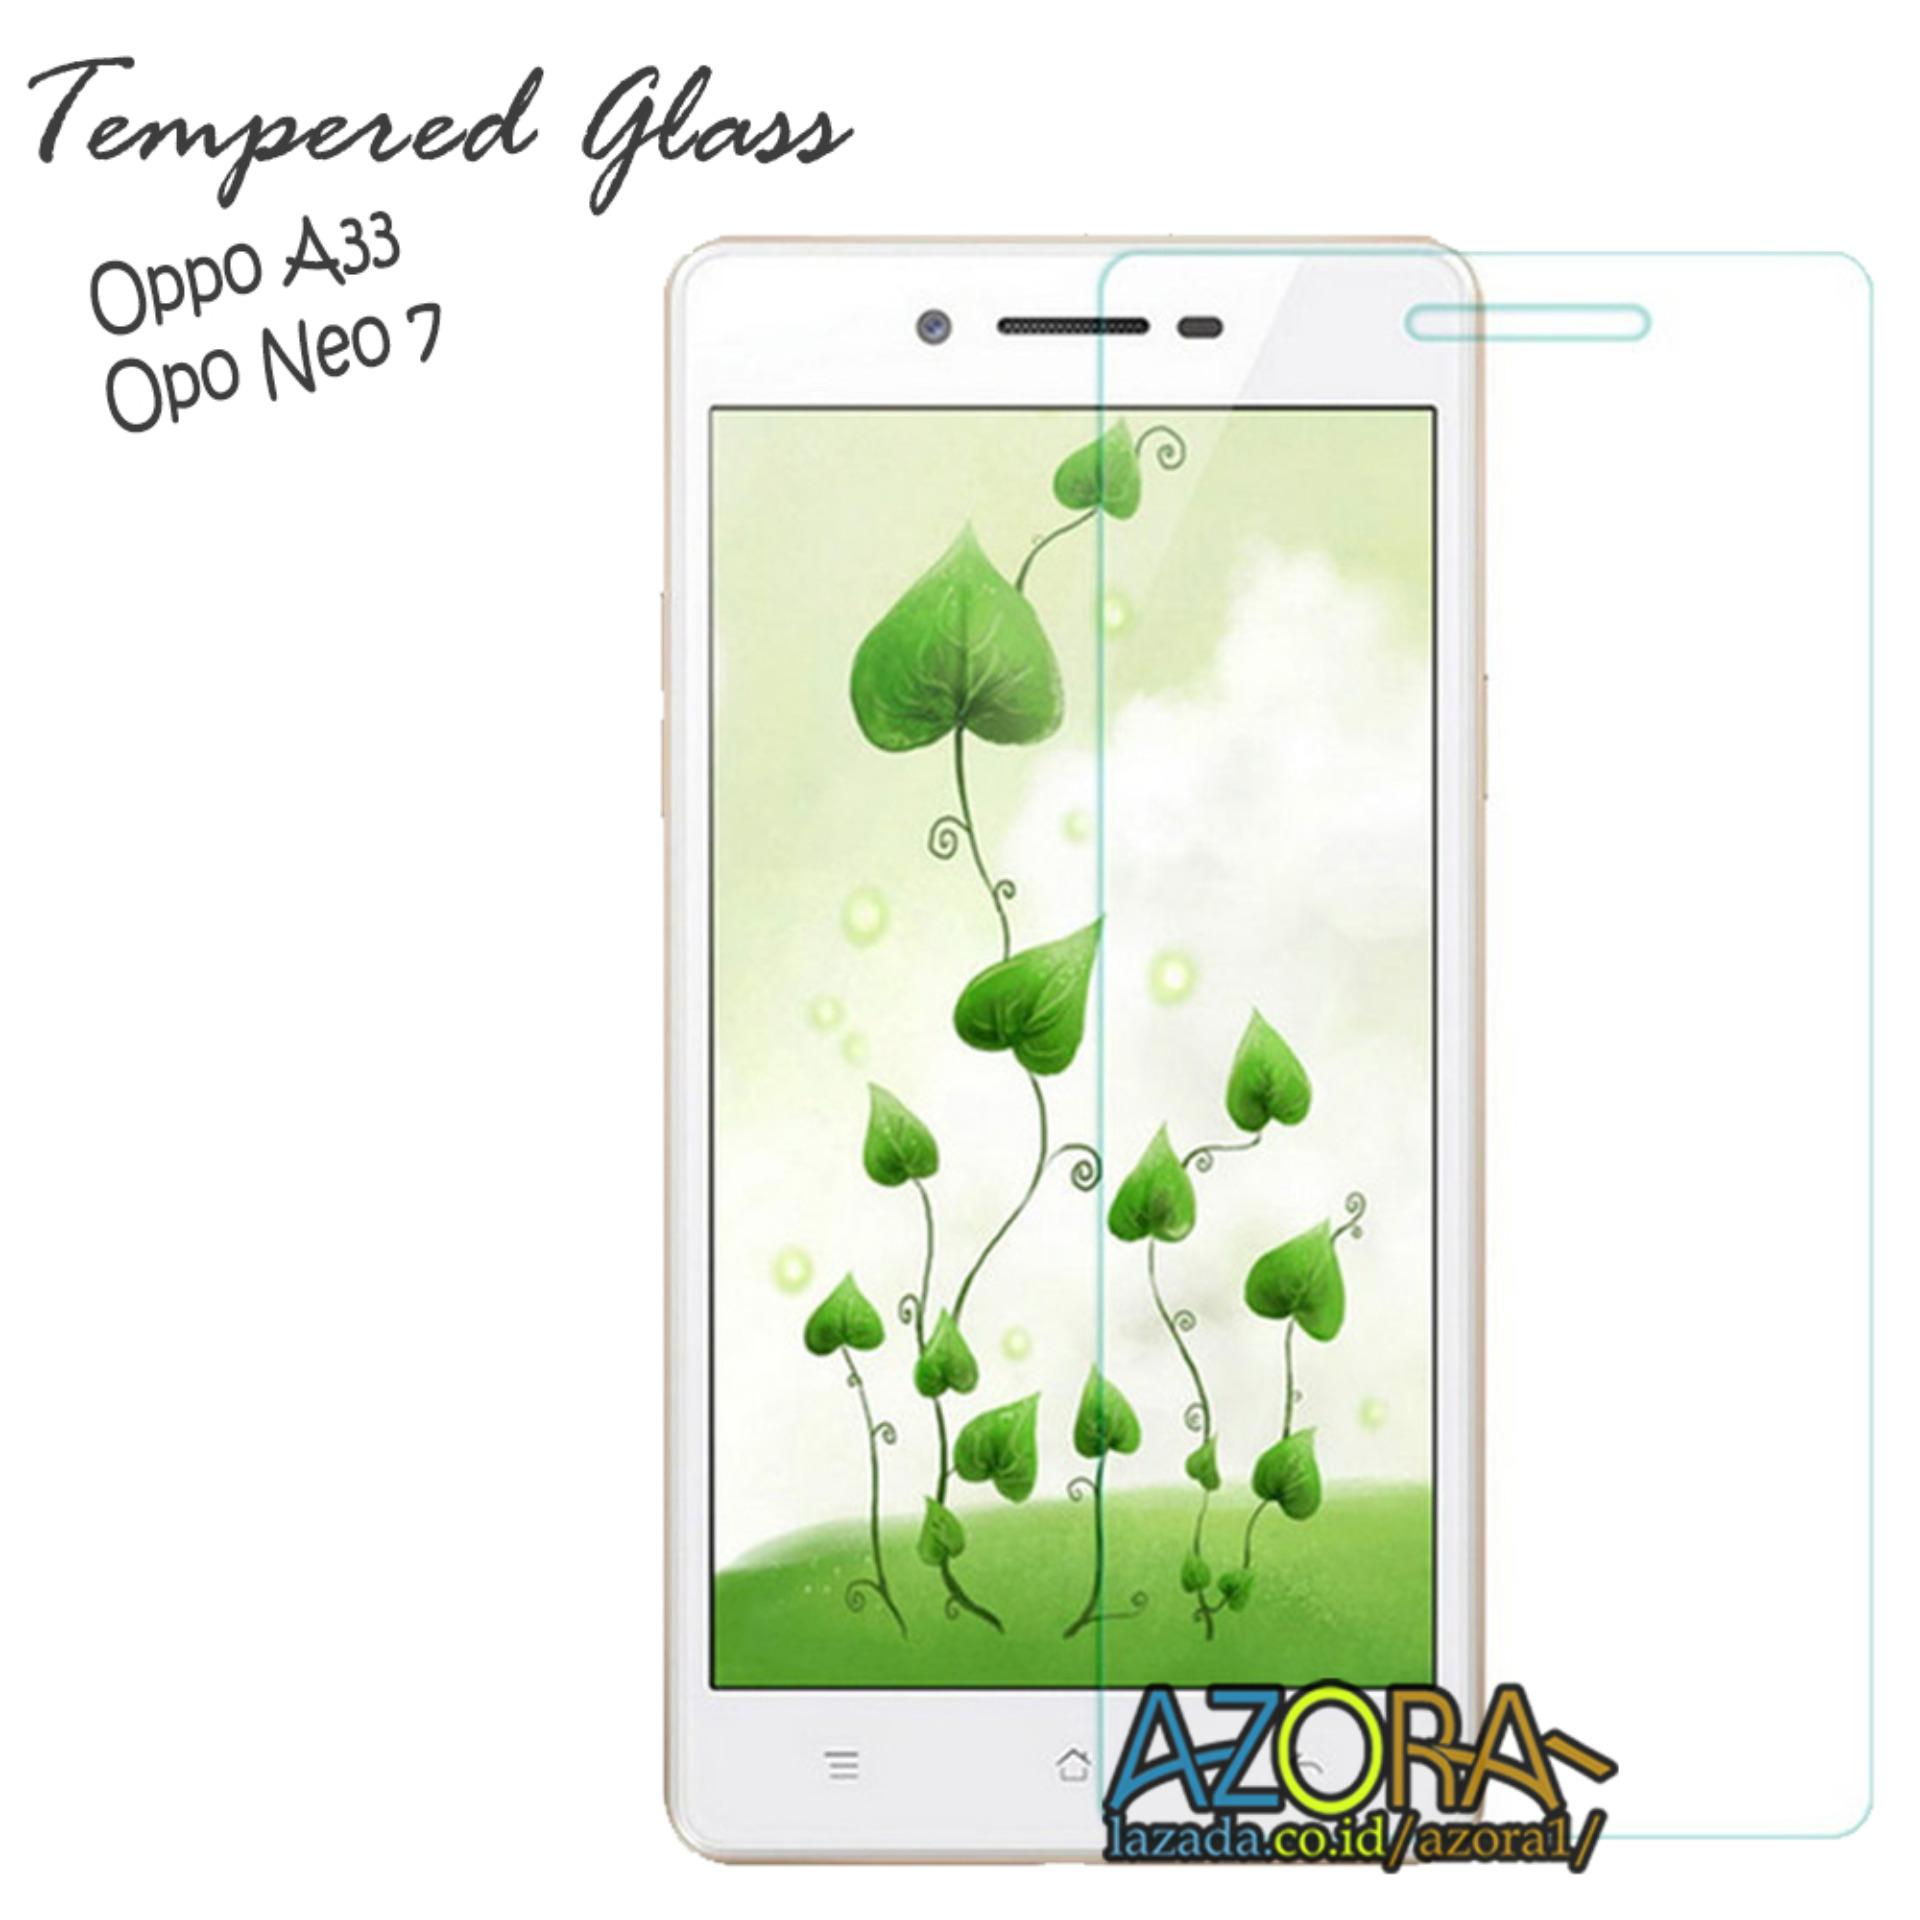 Tempered Glass Oppo Neo 7 / A33 Screen Protector Pelindung Layar Kaca Anti Gores - Bening